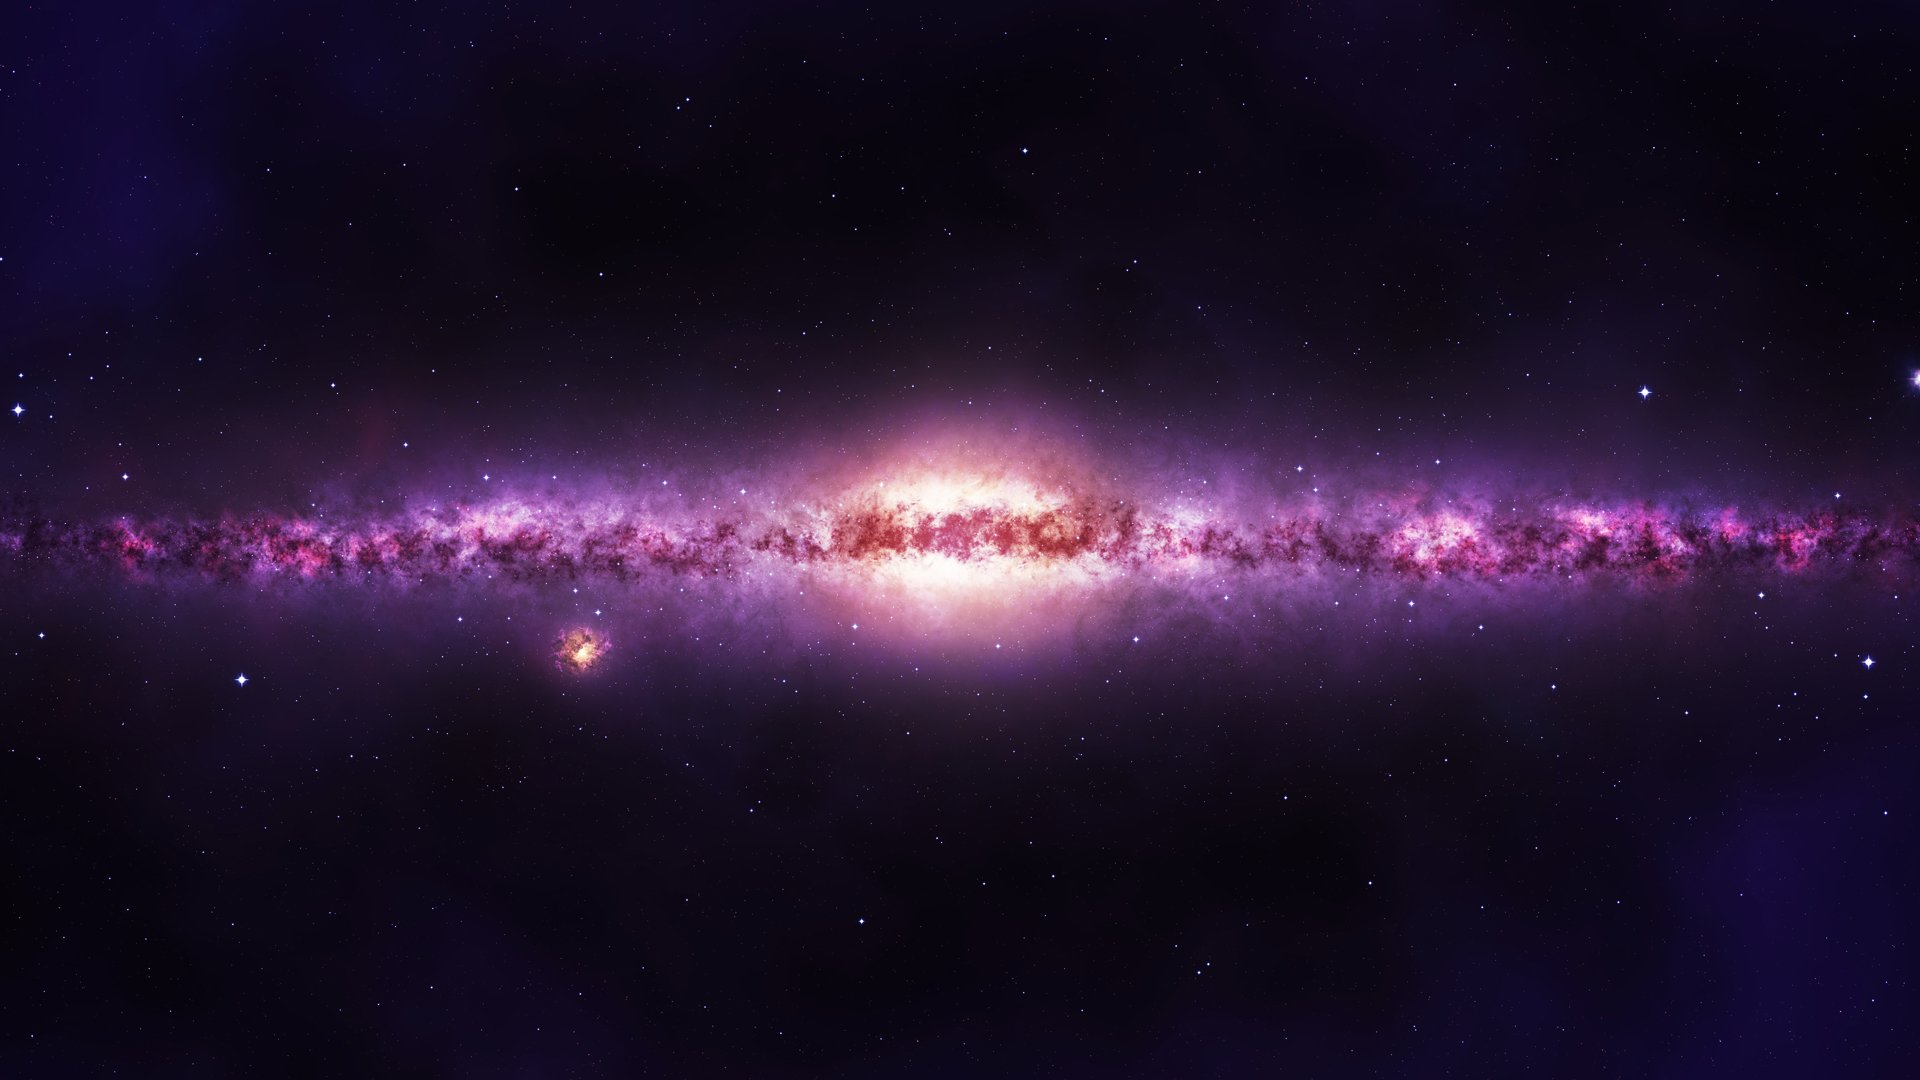 Galaxy wallpapers 1920x1080 Full HD (1080p) desktop ...